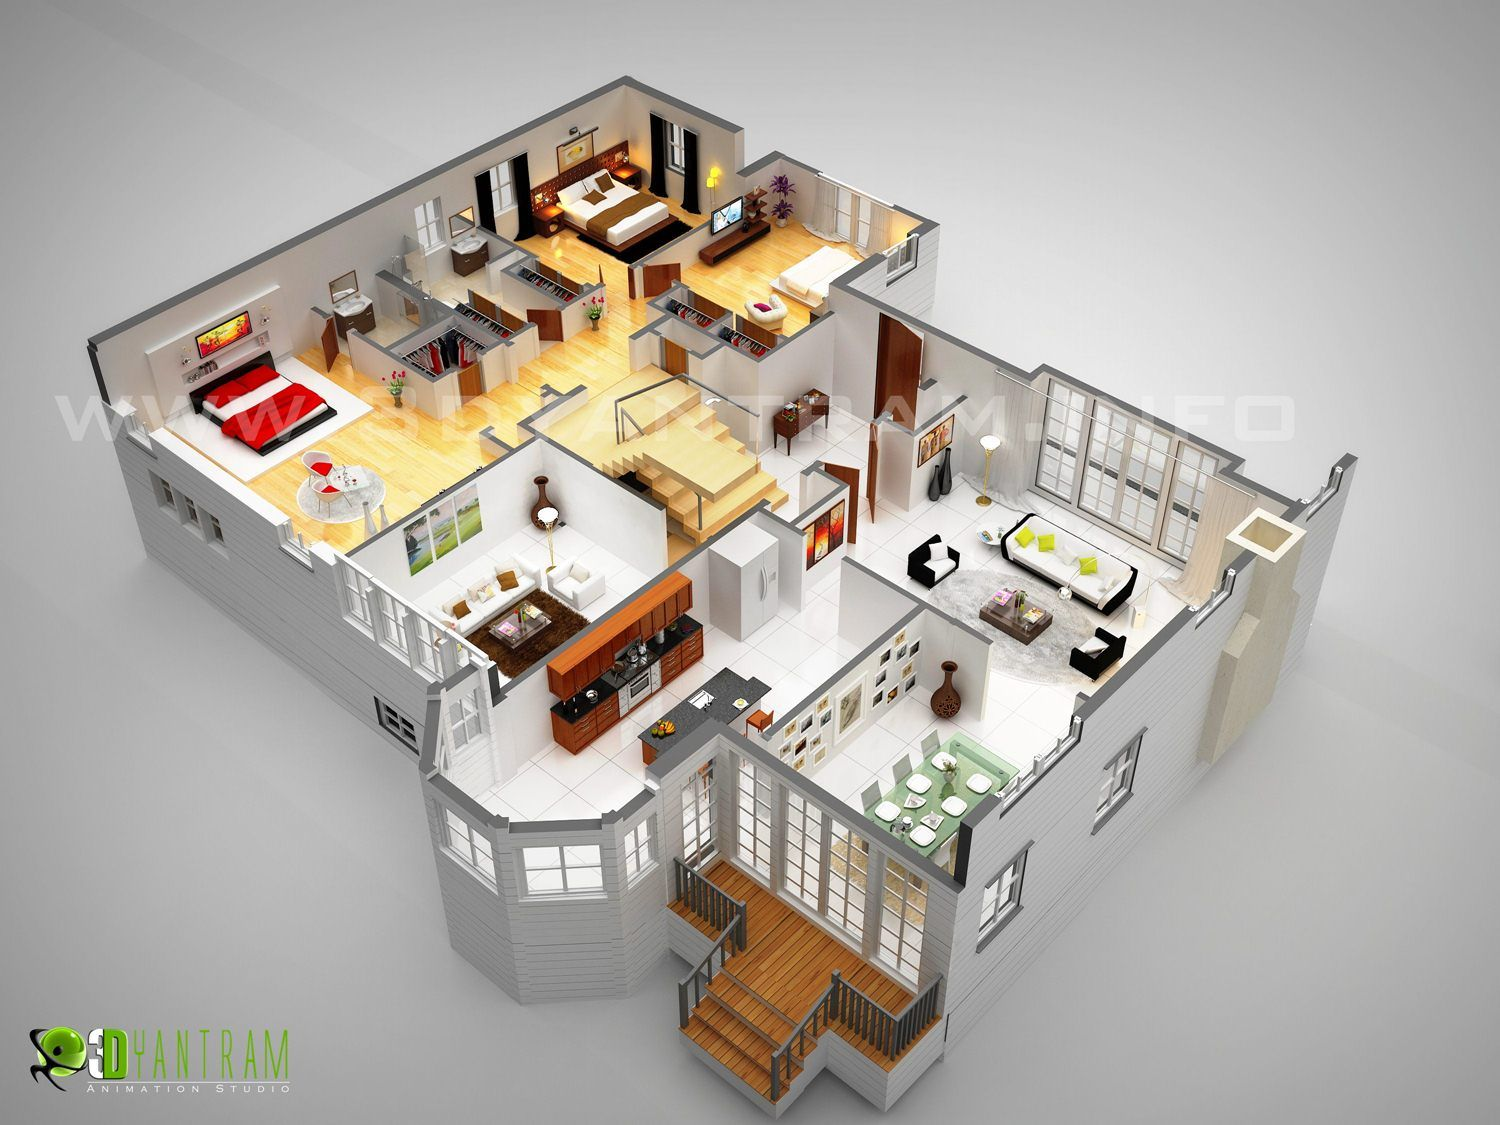 Laxurious Residential 3d Floor Plan Paris Sims